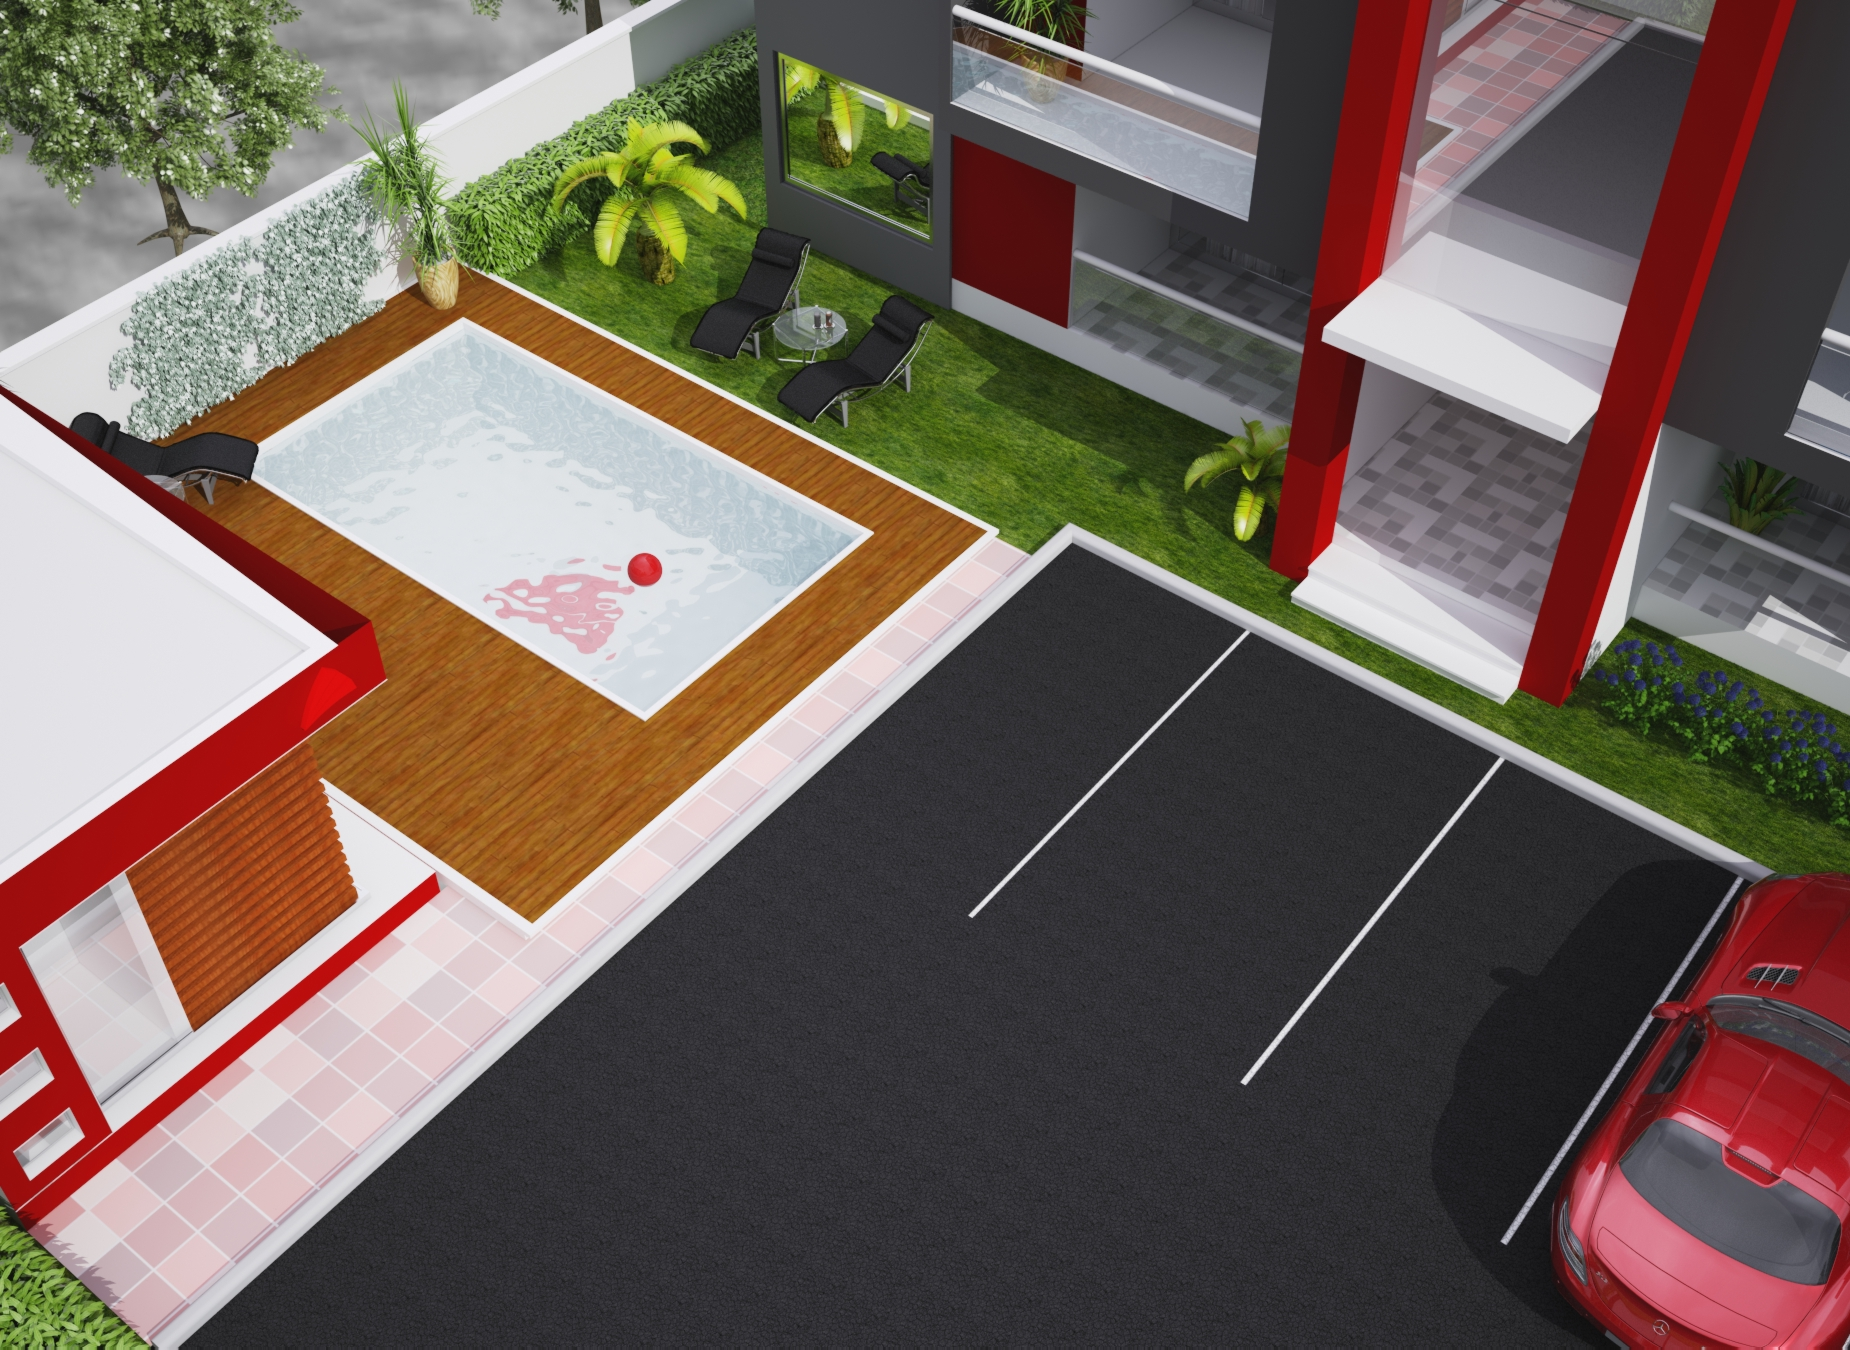 3 Bedroom Apartments for Sale in Cantonments